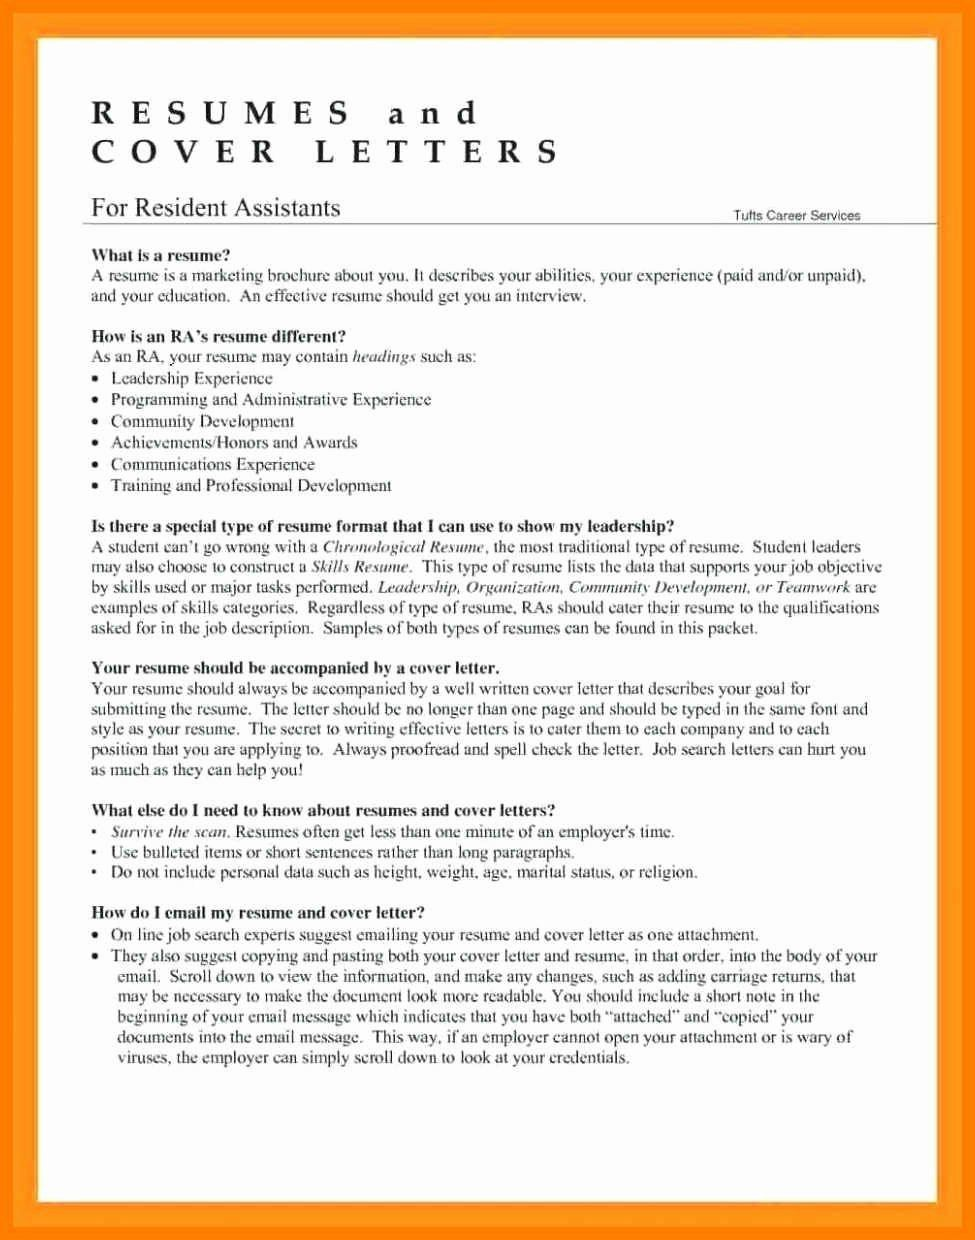 48++ Resident assistant resume objective ideas